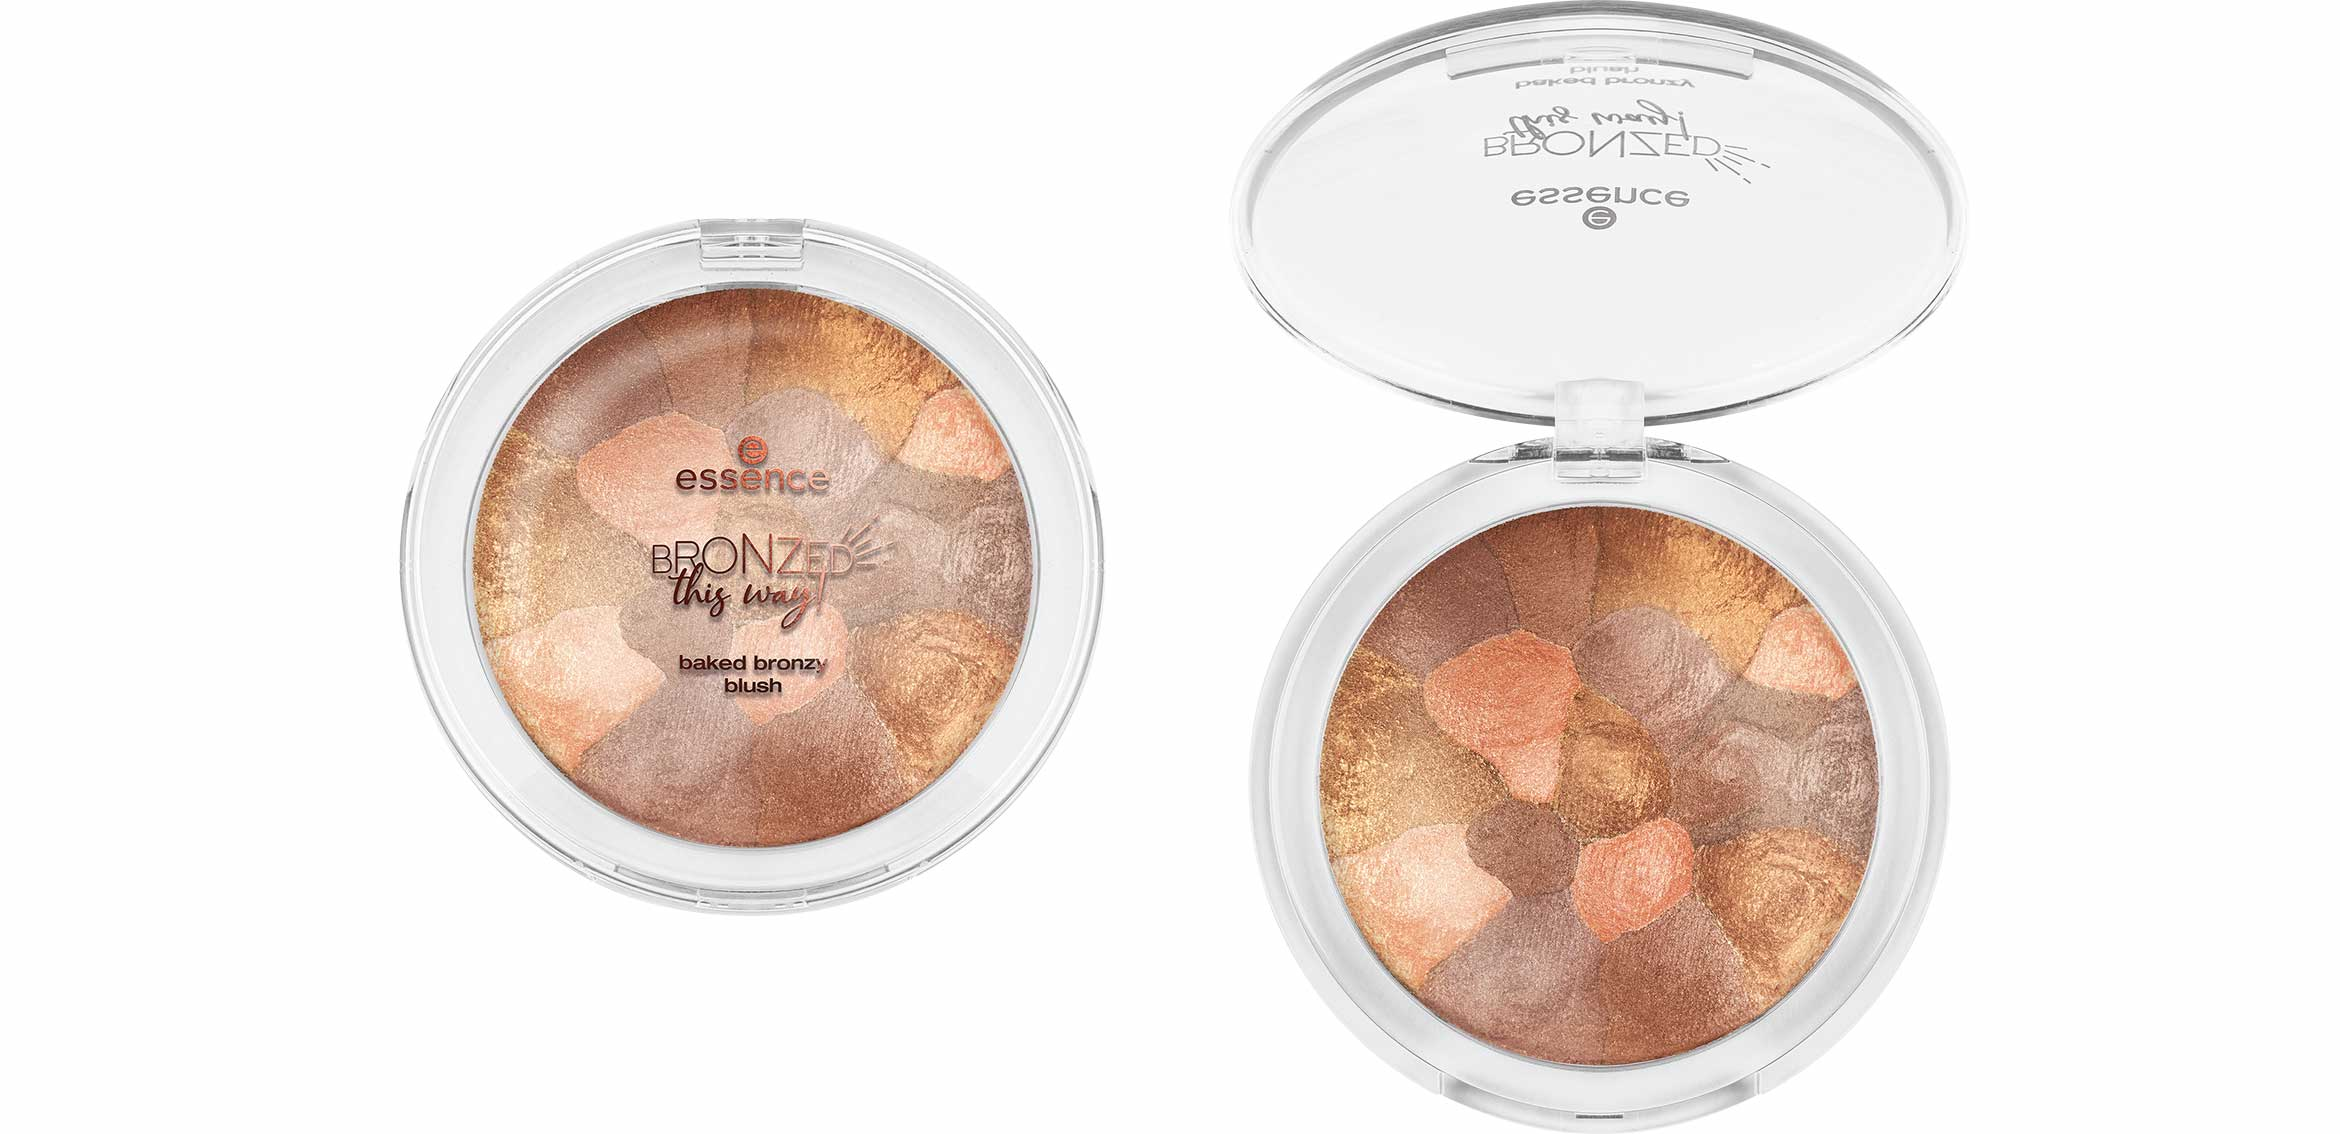 essence bronzed this way baked bronzy blush